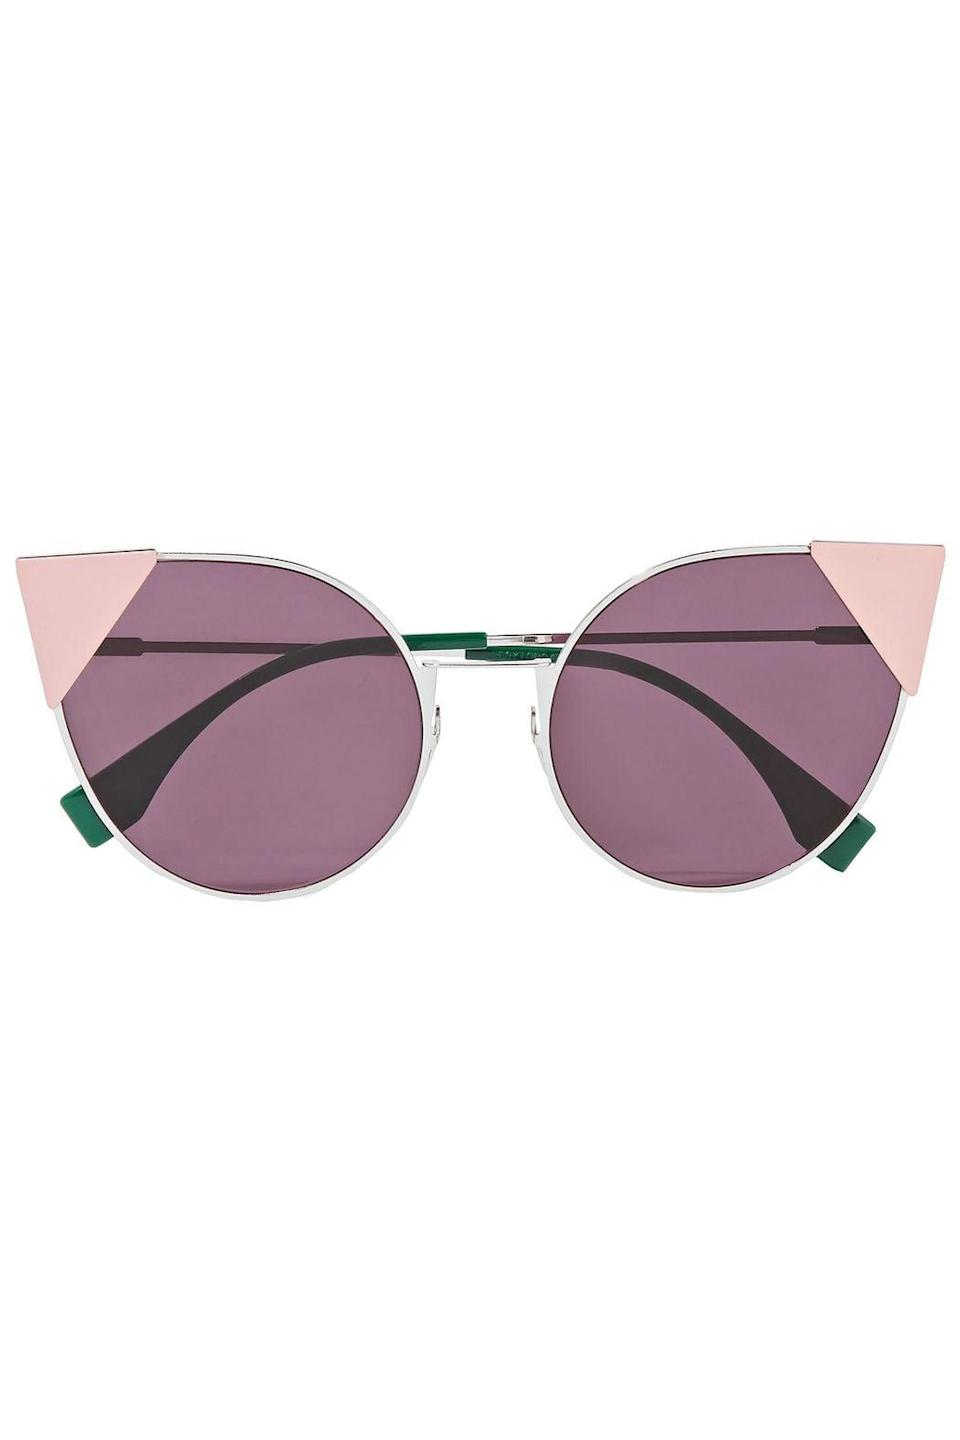 <p>These <span>Fendi Pink Cat-Eye Sunglasses</span> ($302, originally $540) are such a statement.</p>